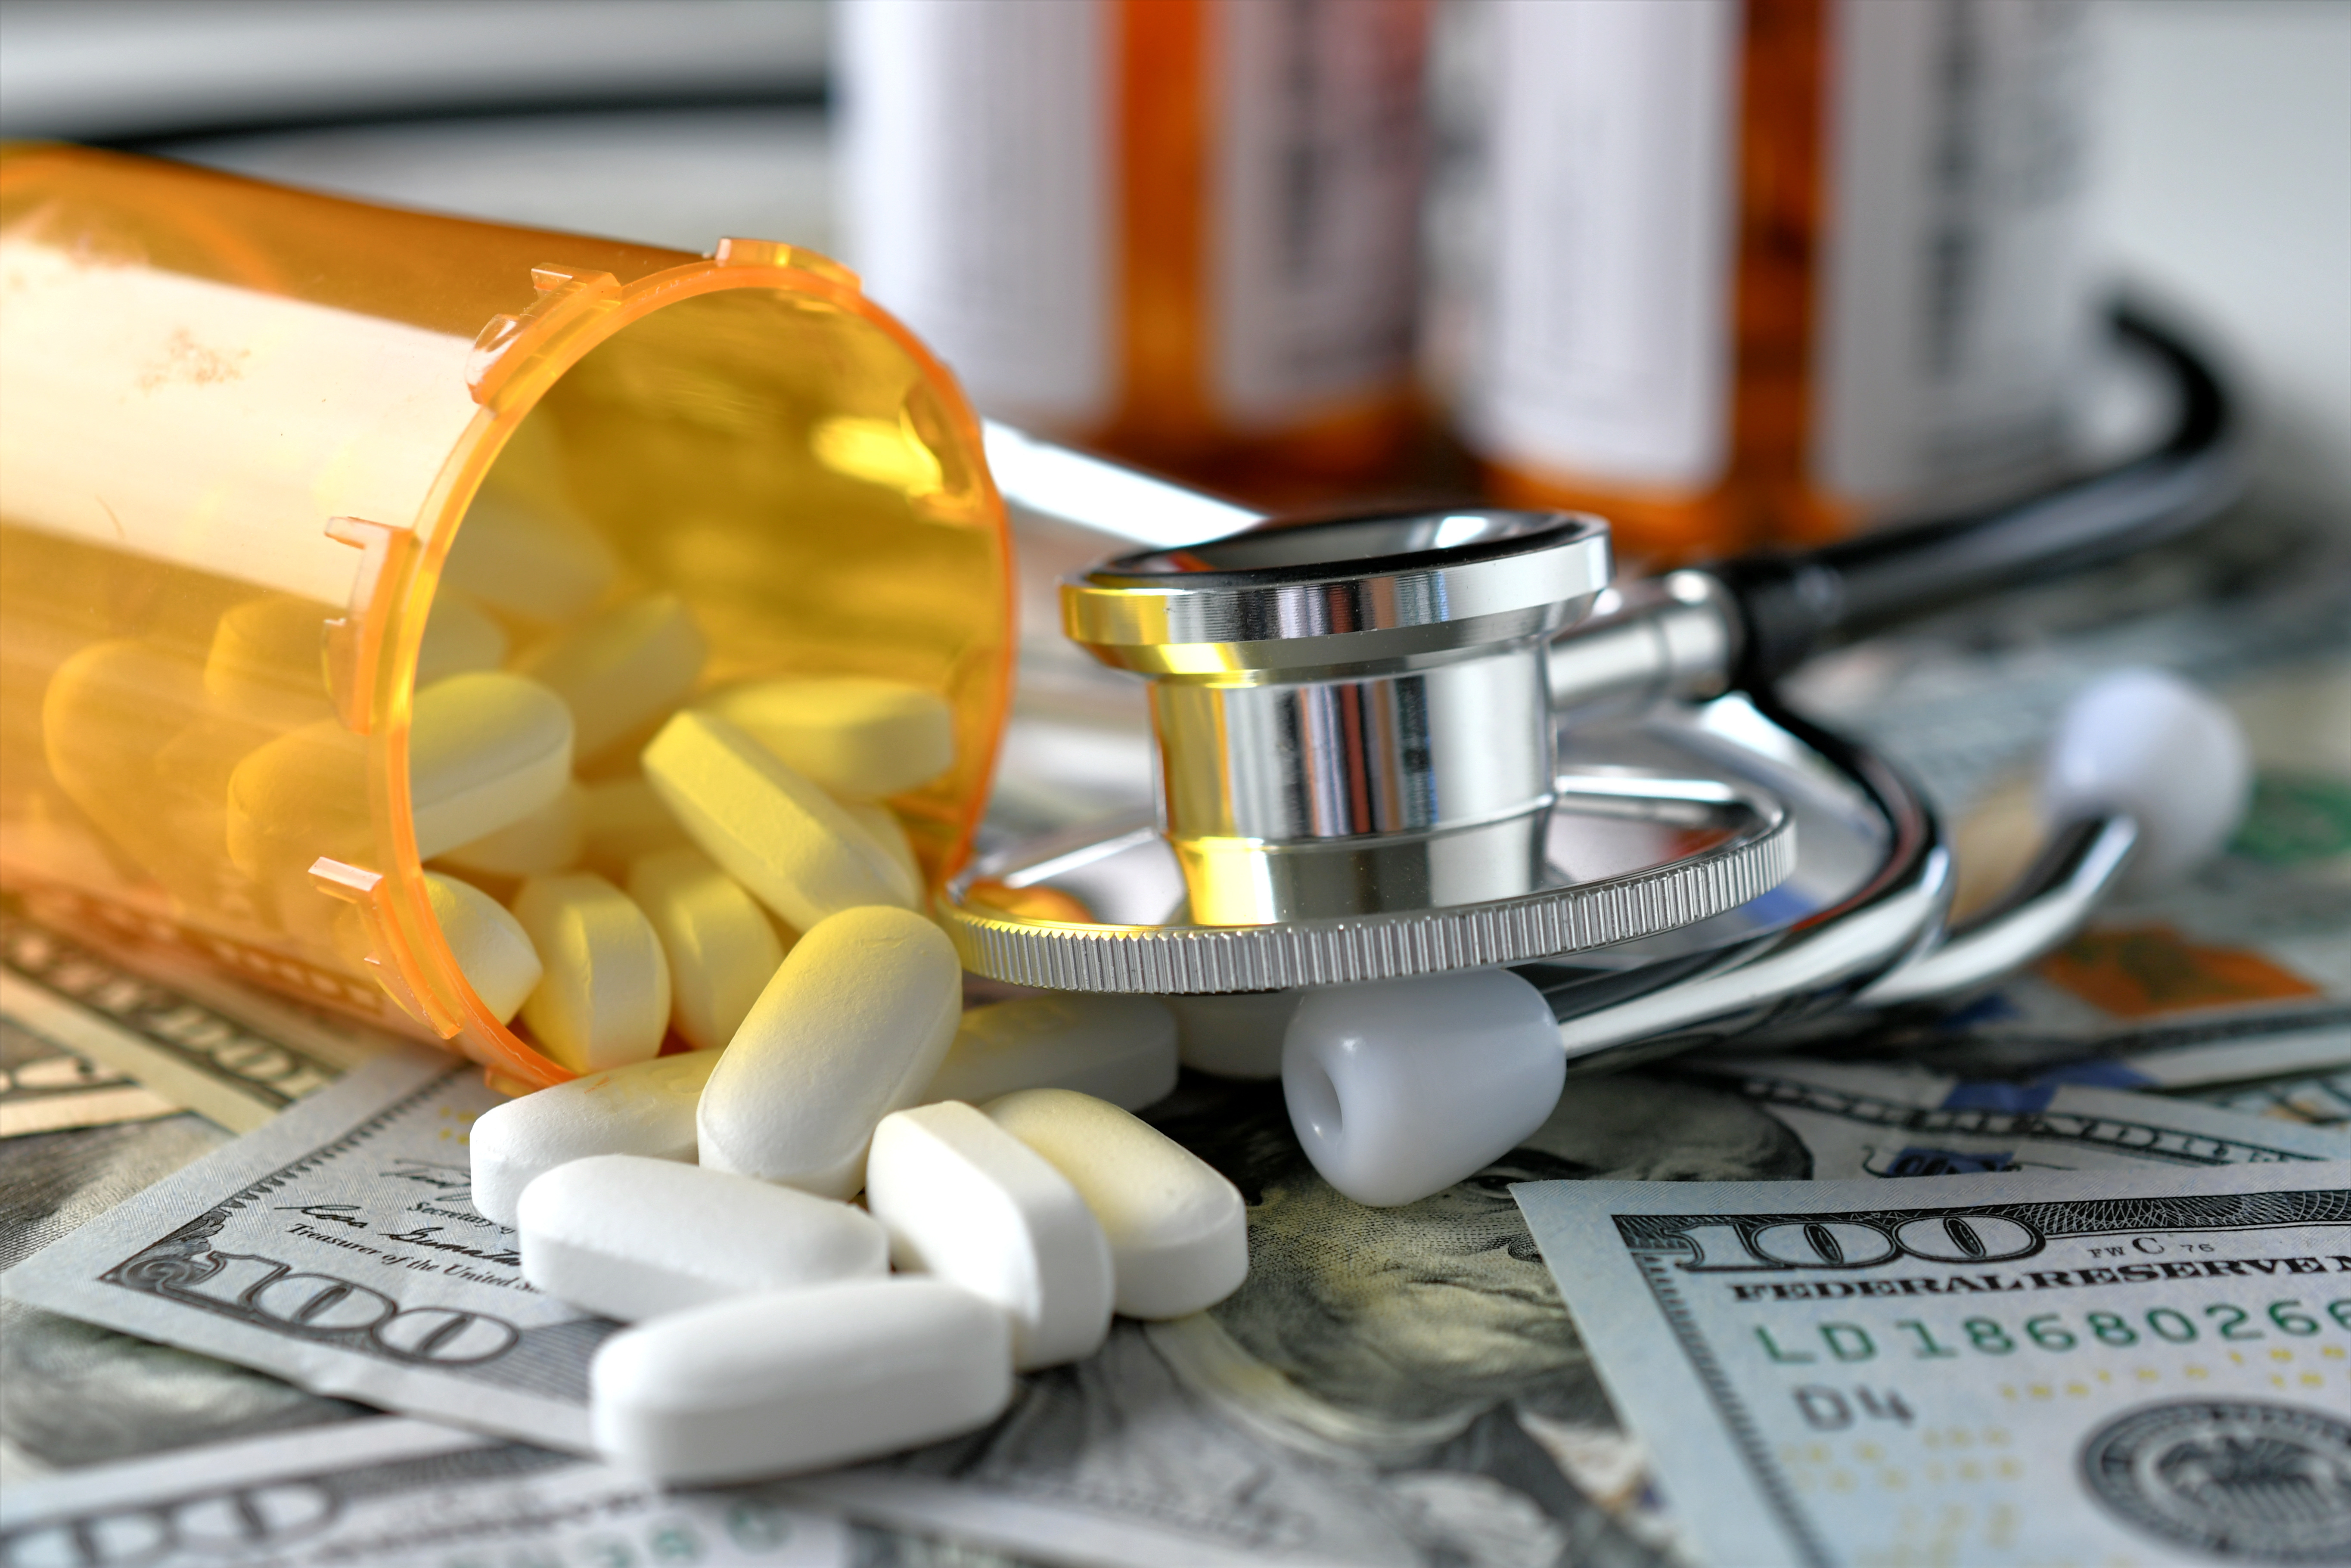 High Angle View Of Medicines With Stethoscope And Paper Currencies On Table